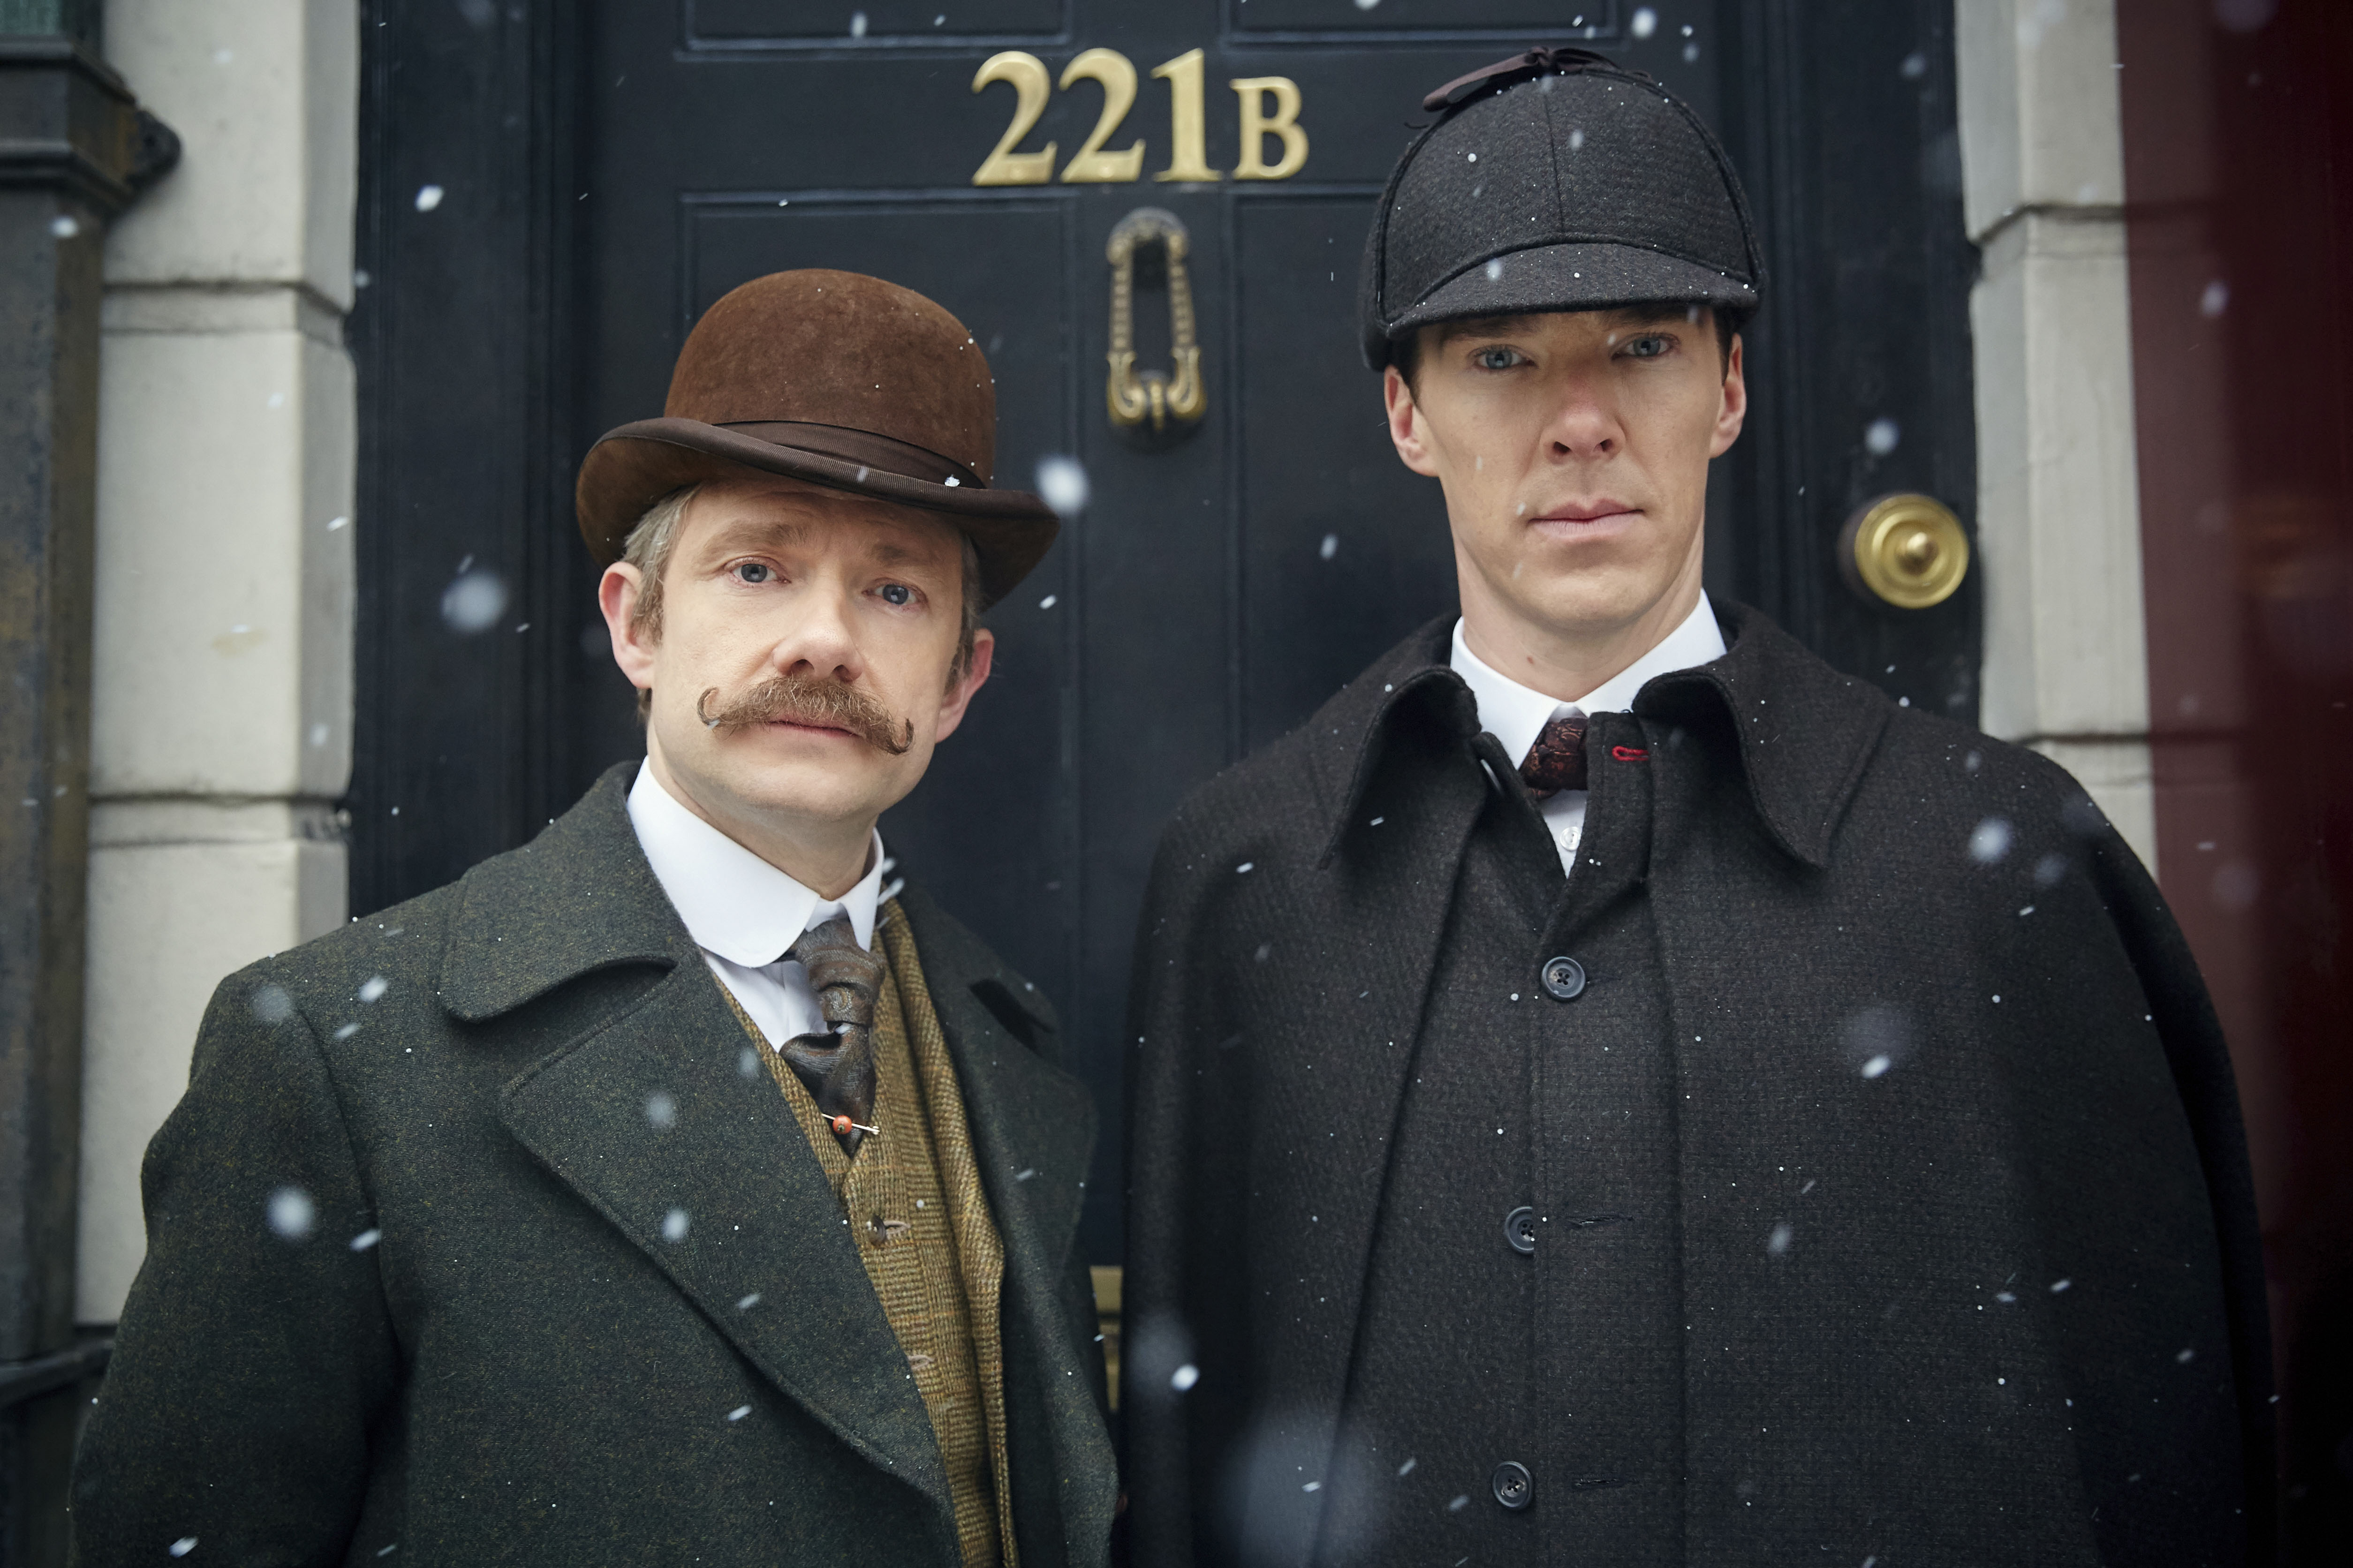 John Watson (Martin Freeman) y Sherlock Holmes (Benedict Cumberbatch) en el capítulo especial de Navidad emitido el 6 de enero de 2016 | Foto: © Robert Viglasky/Hartswood Films y BBC Wales para BBC One y MASTERPIECE This image may be used only in the direct promotion of MASTERPIECE. No other rights are granted. All rights are reserved. Editorial use only.